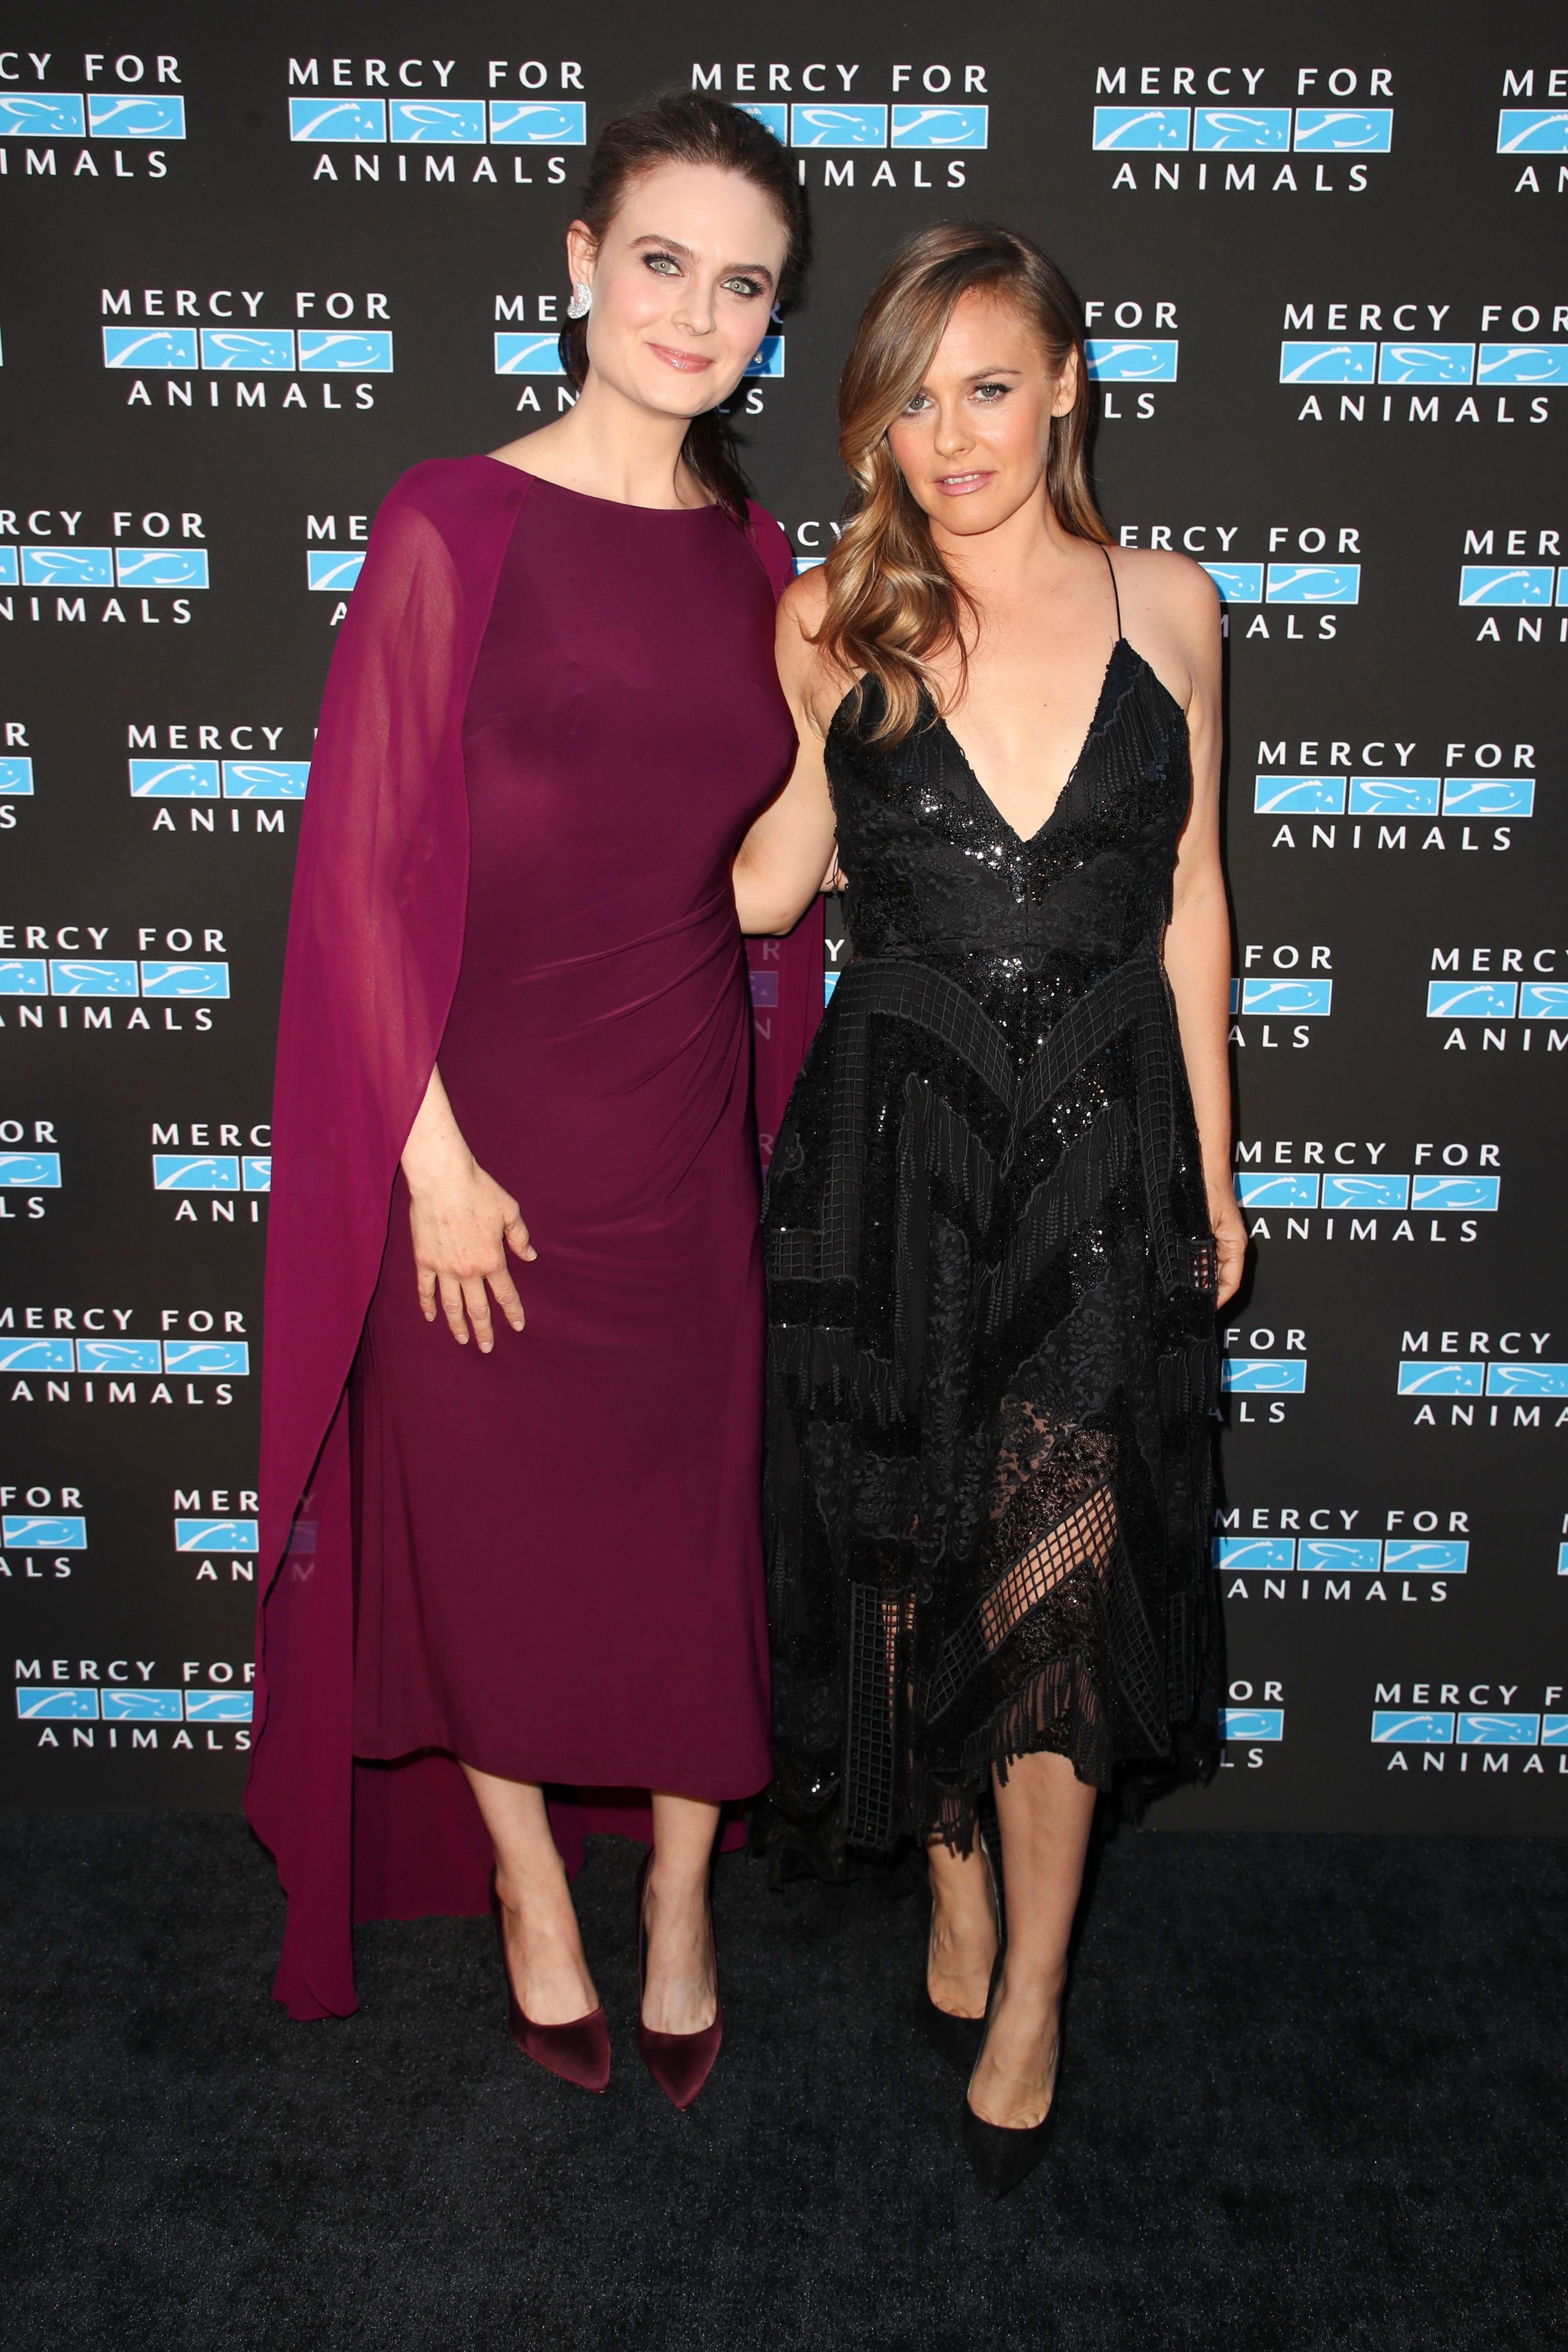 Emily Deschanel and Alicia Silverstone attend the Mercy for Animals Gala in Los Angeles on Sept. 15, 2018.